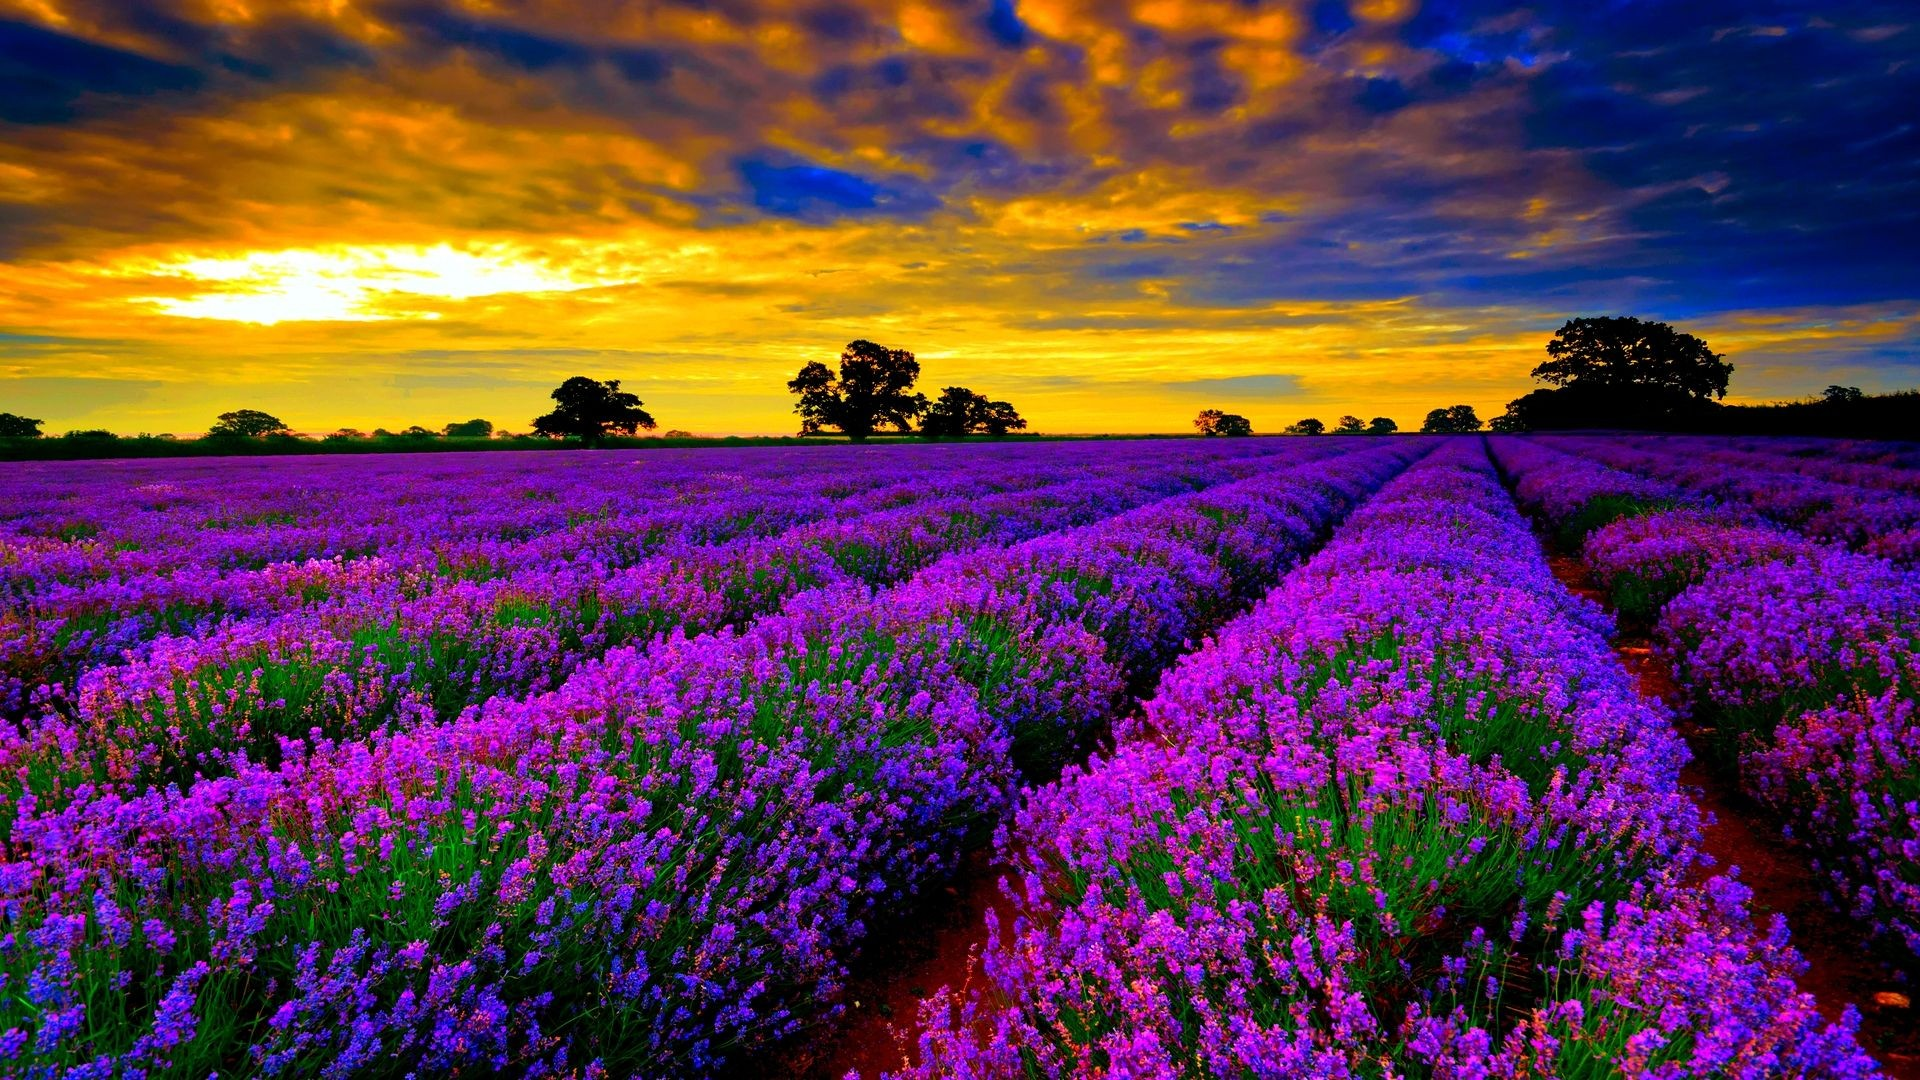 Most Beautiful Field Of Lavender Flowers Widescreen Desktop 1920x1080